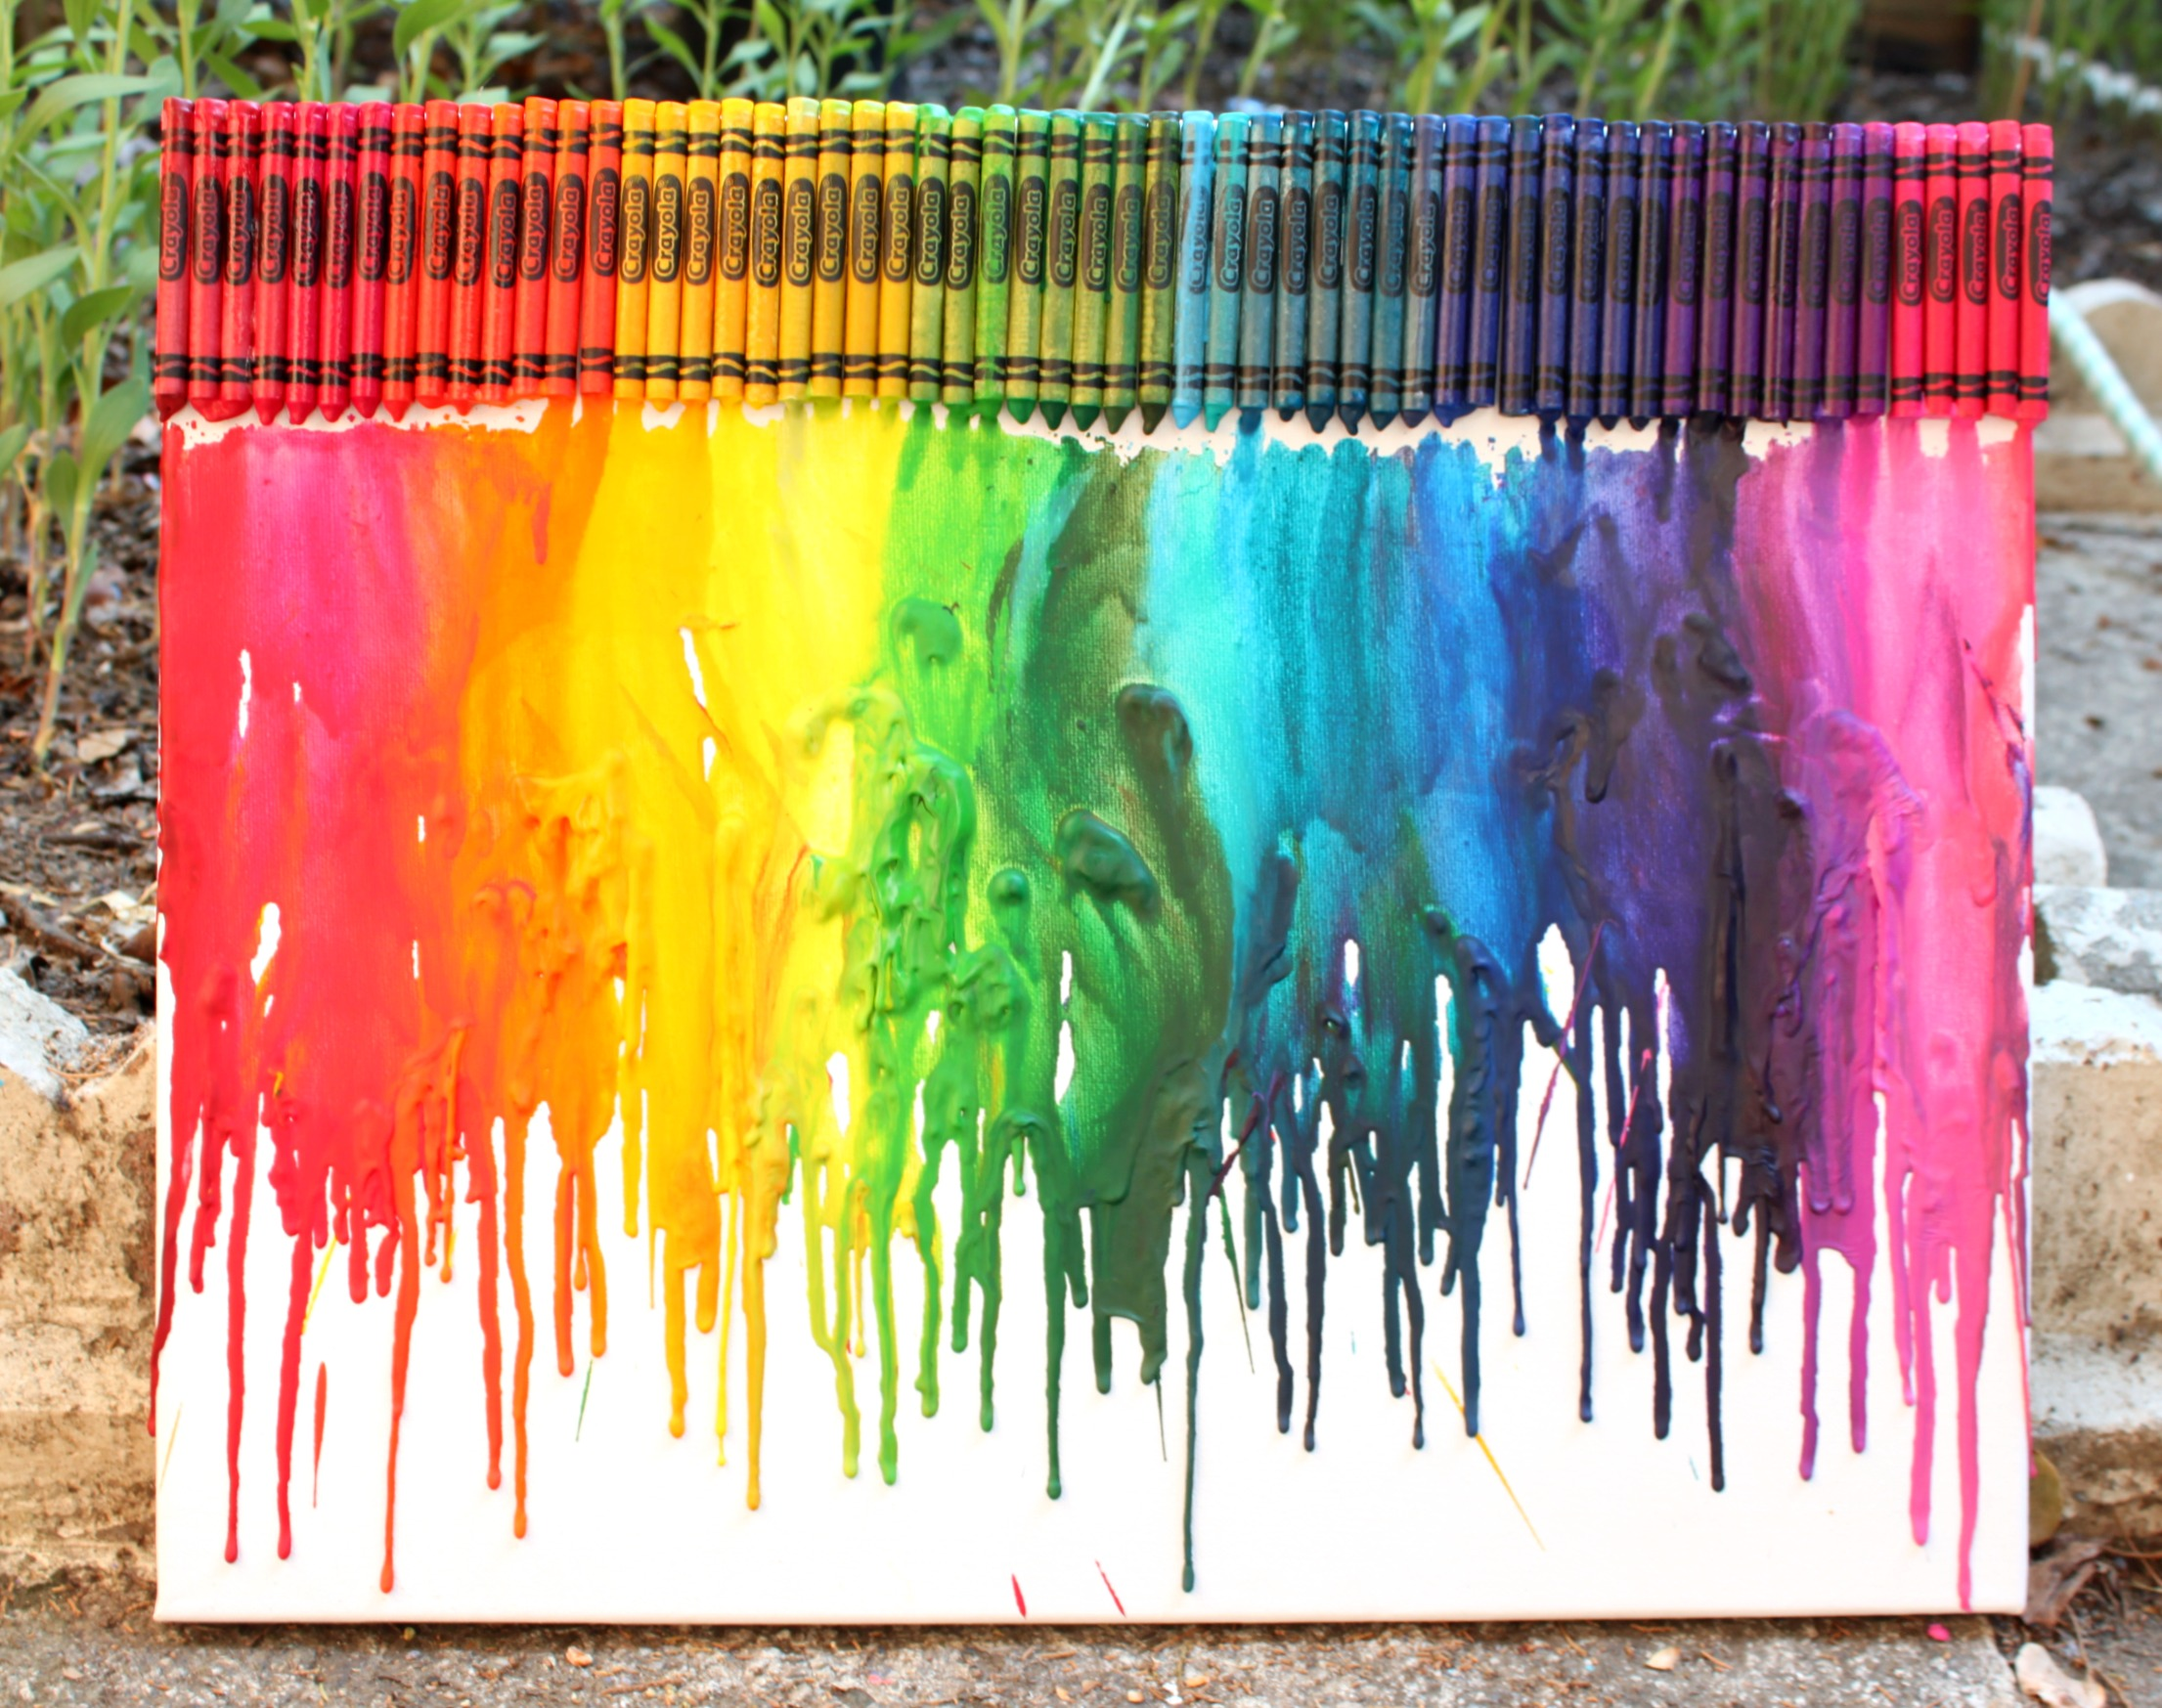 color crayon art : Color Crayon Art 26